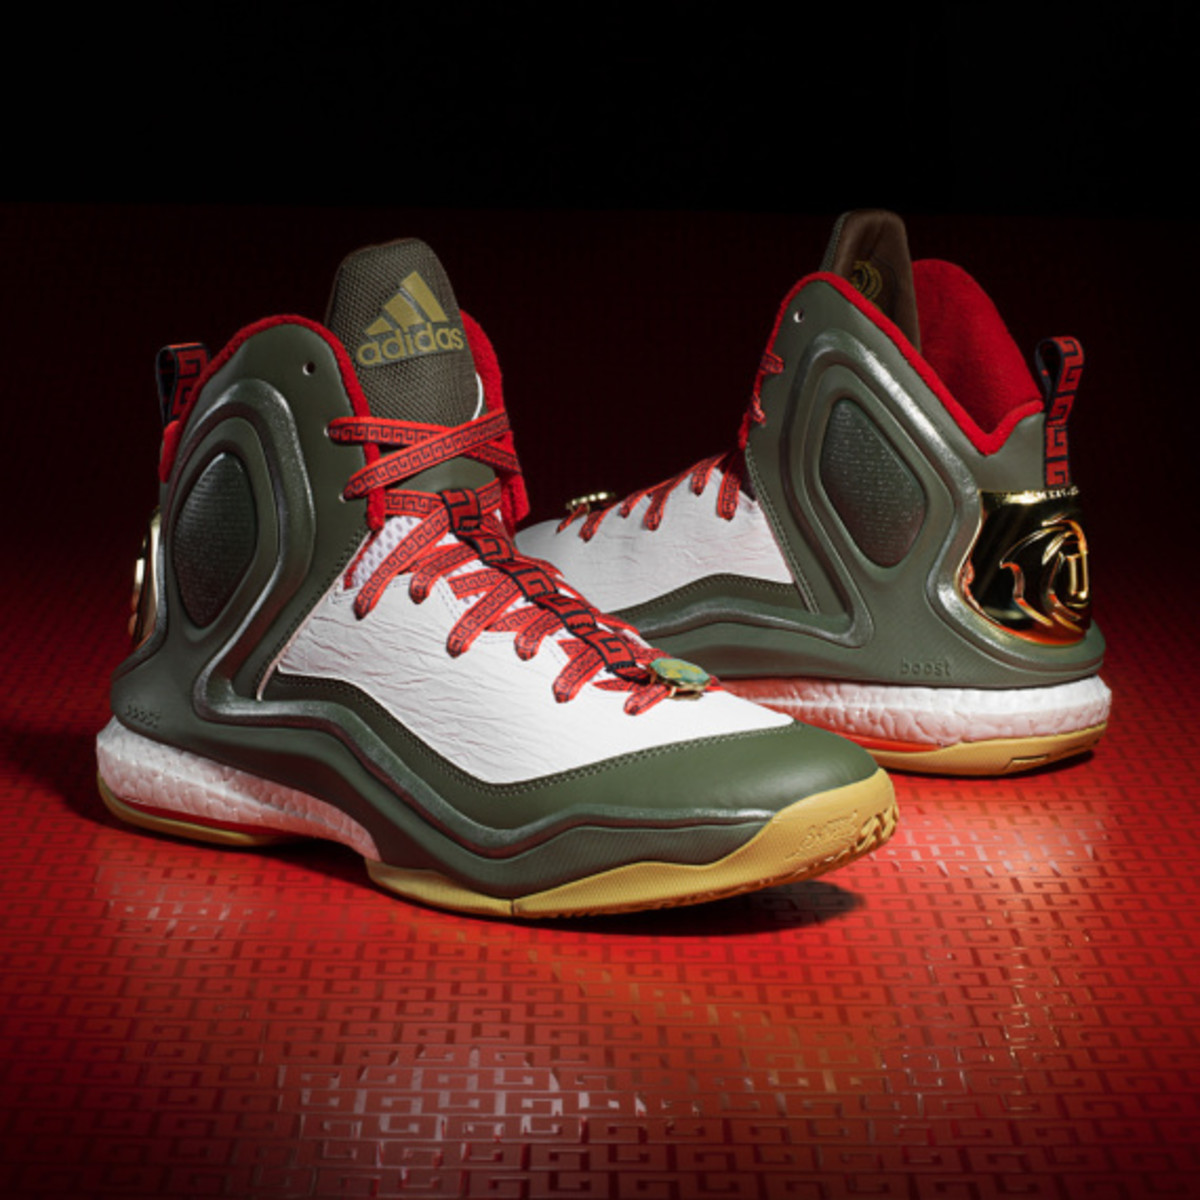 adidas-basketball-year-of-the-goat-collection-03